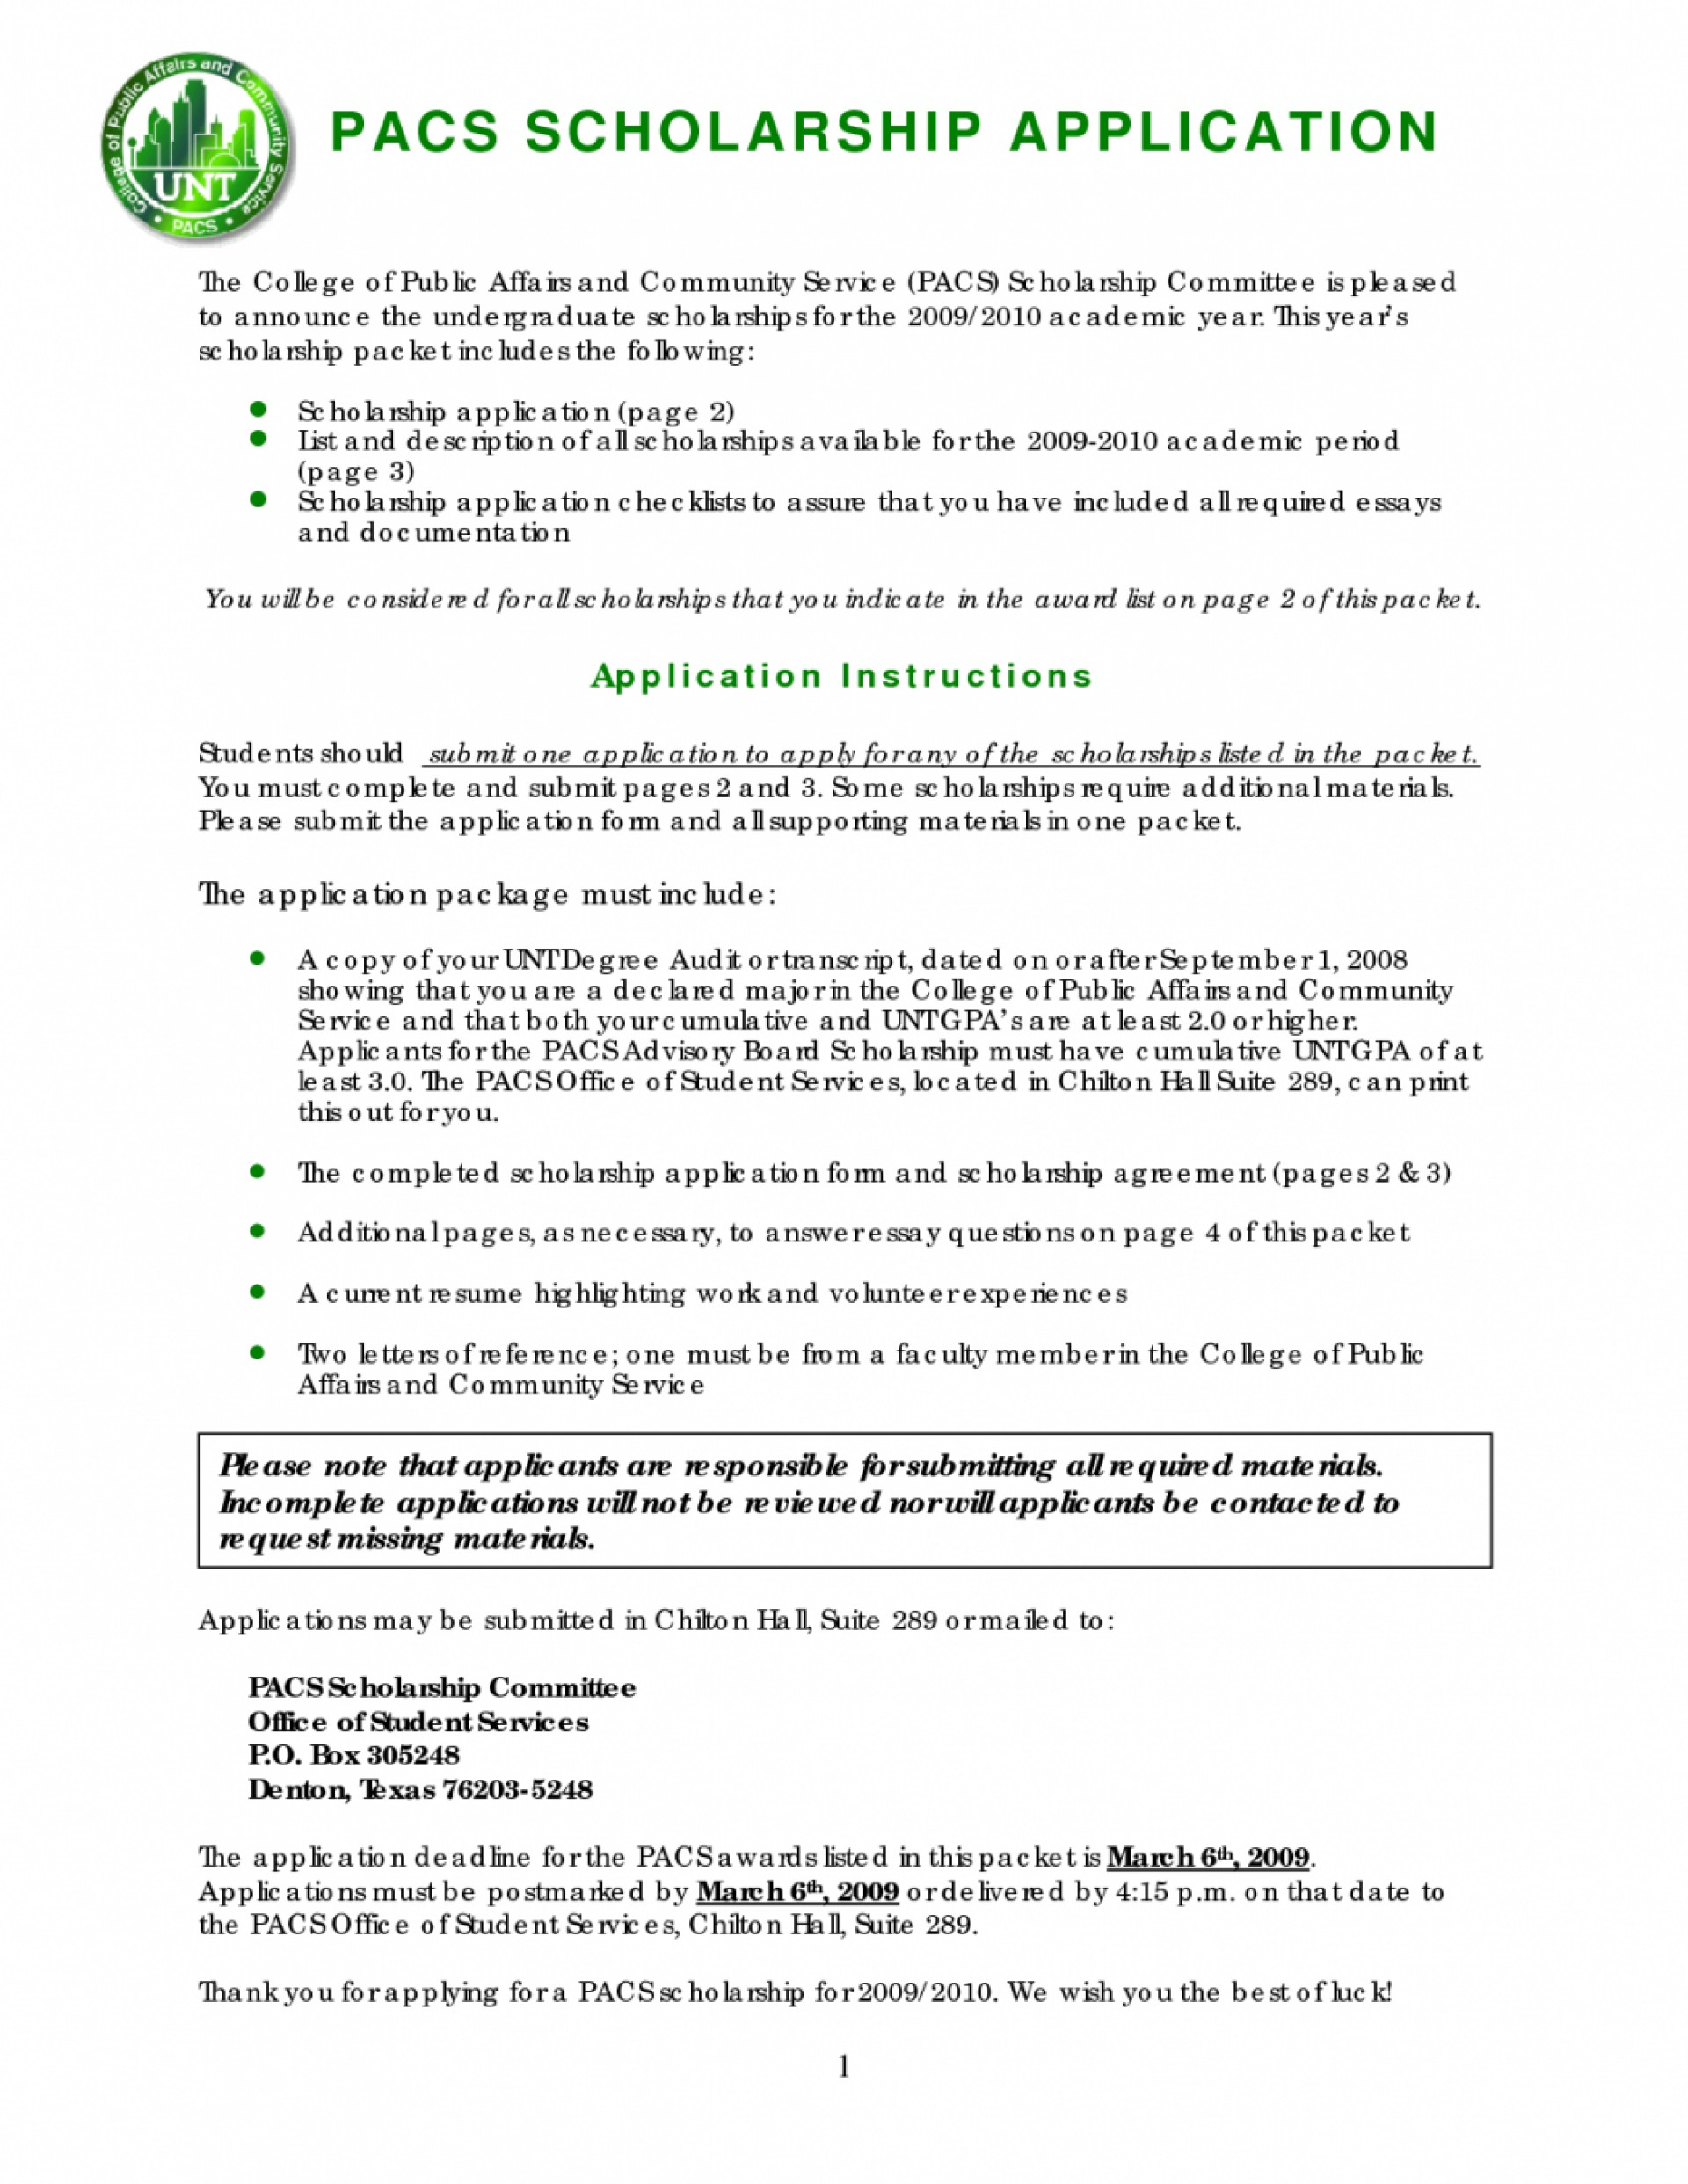 021 Essay Example Samples Of Essays For Scholarships Scholarship Application Sample Pdf 11exu Nursing College Examples Ideas Mba About Yourself 1048x1356 Imposing Non No High School Seniors 2019 Students 2017 1920